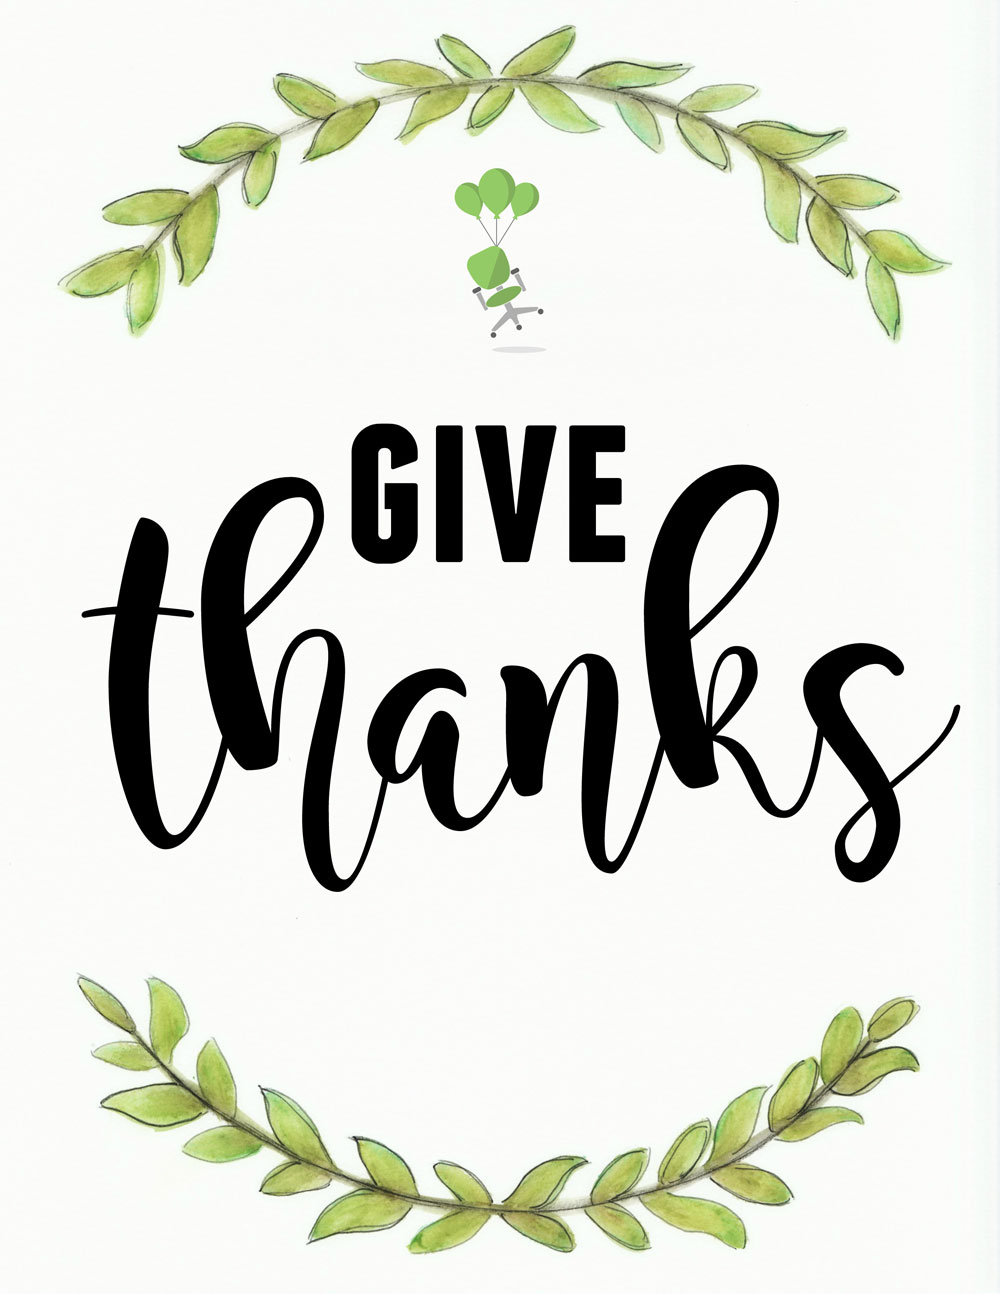 employee-recognition-give-thanks